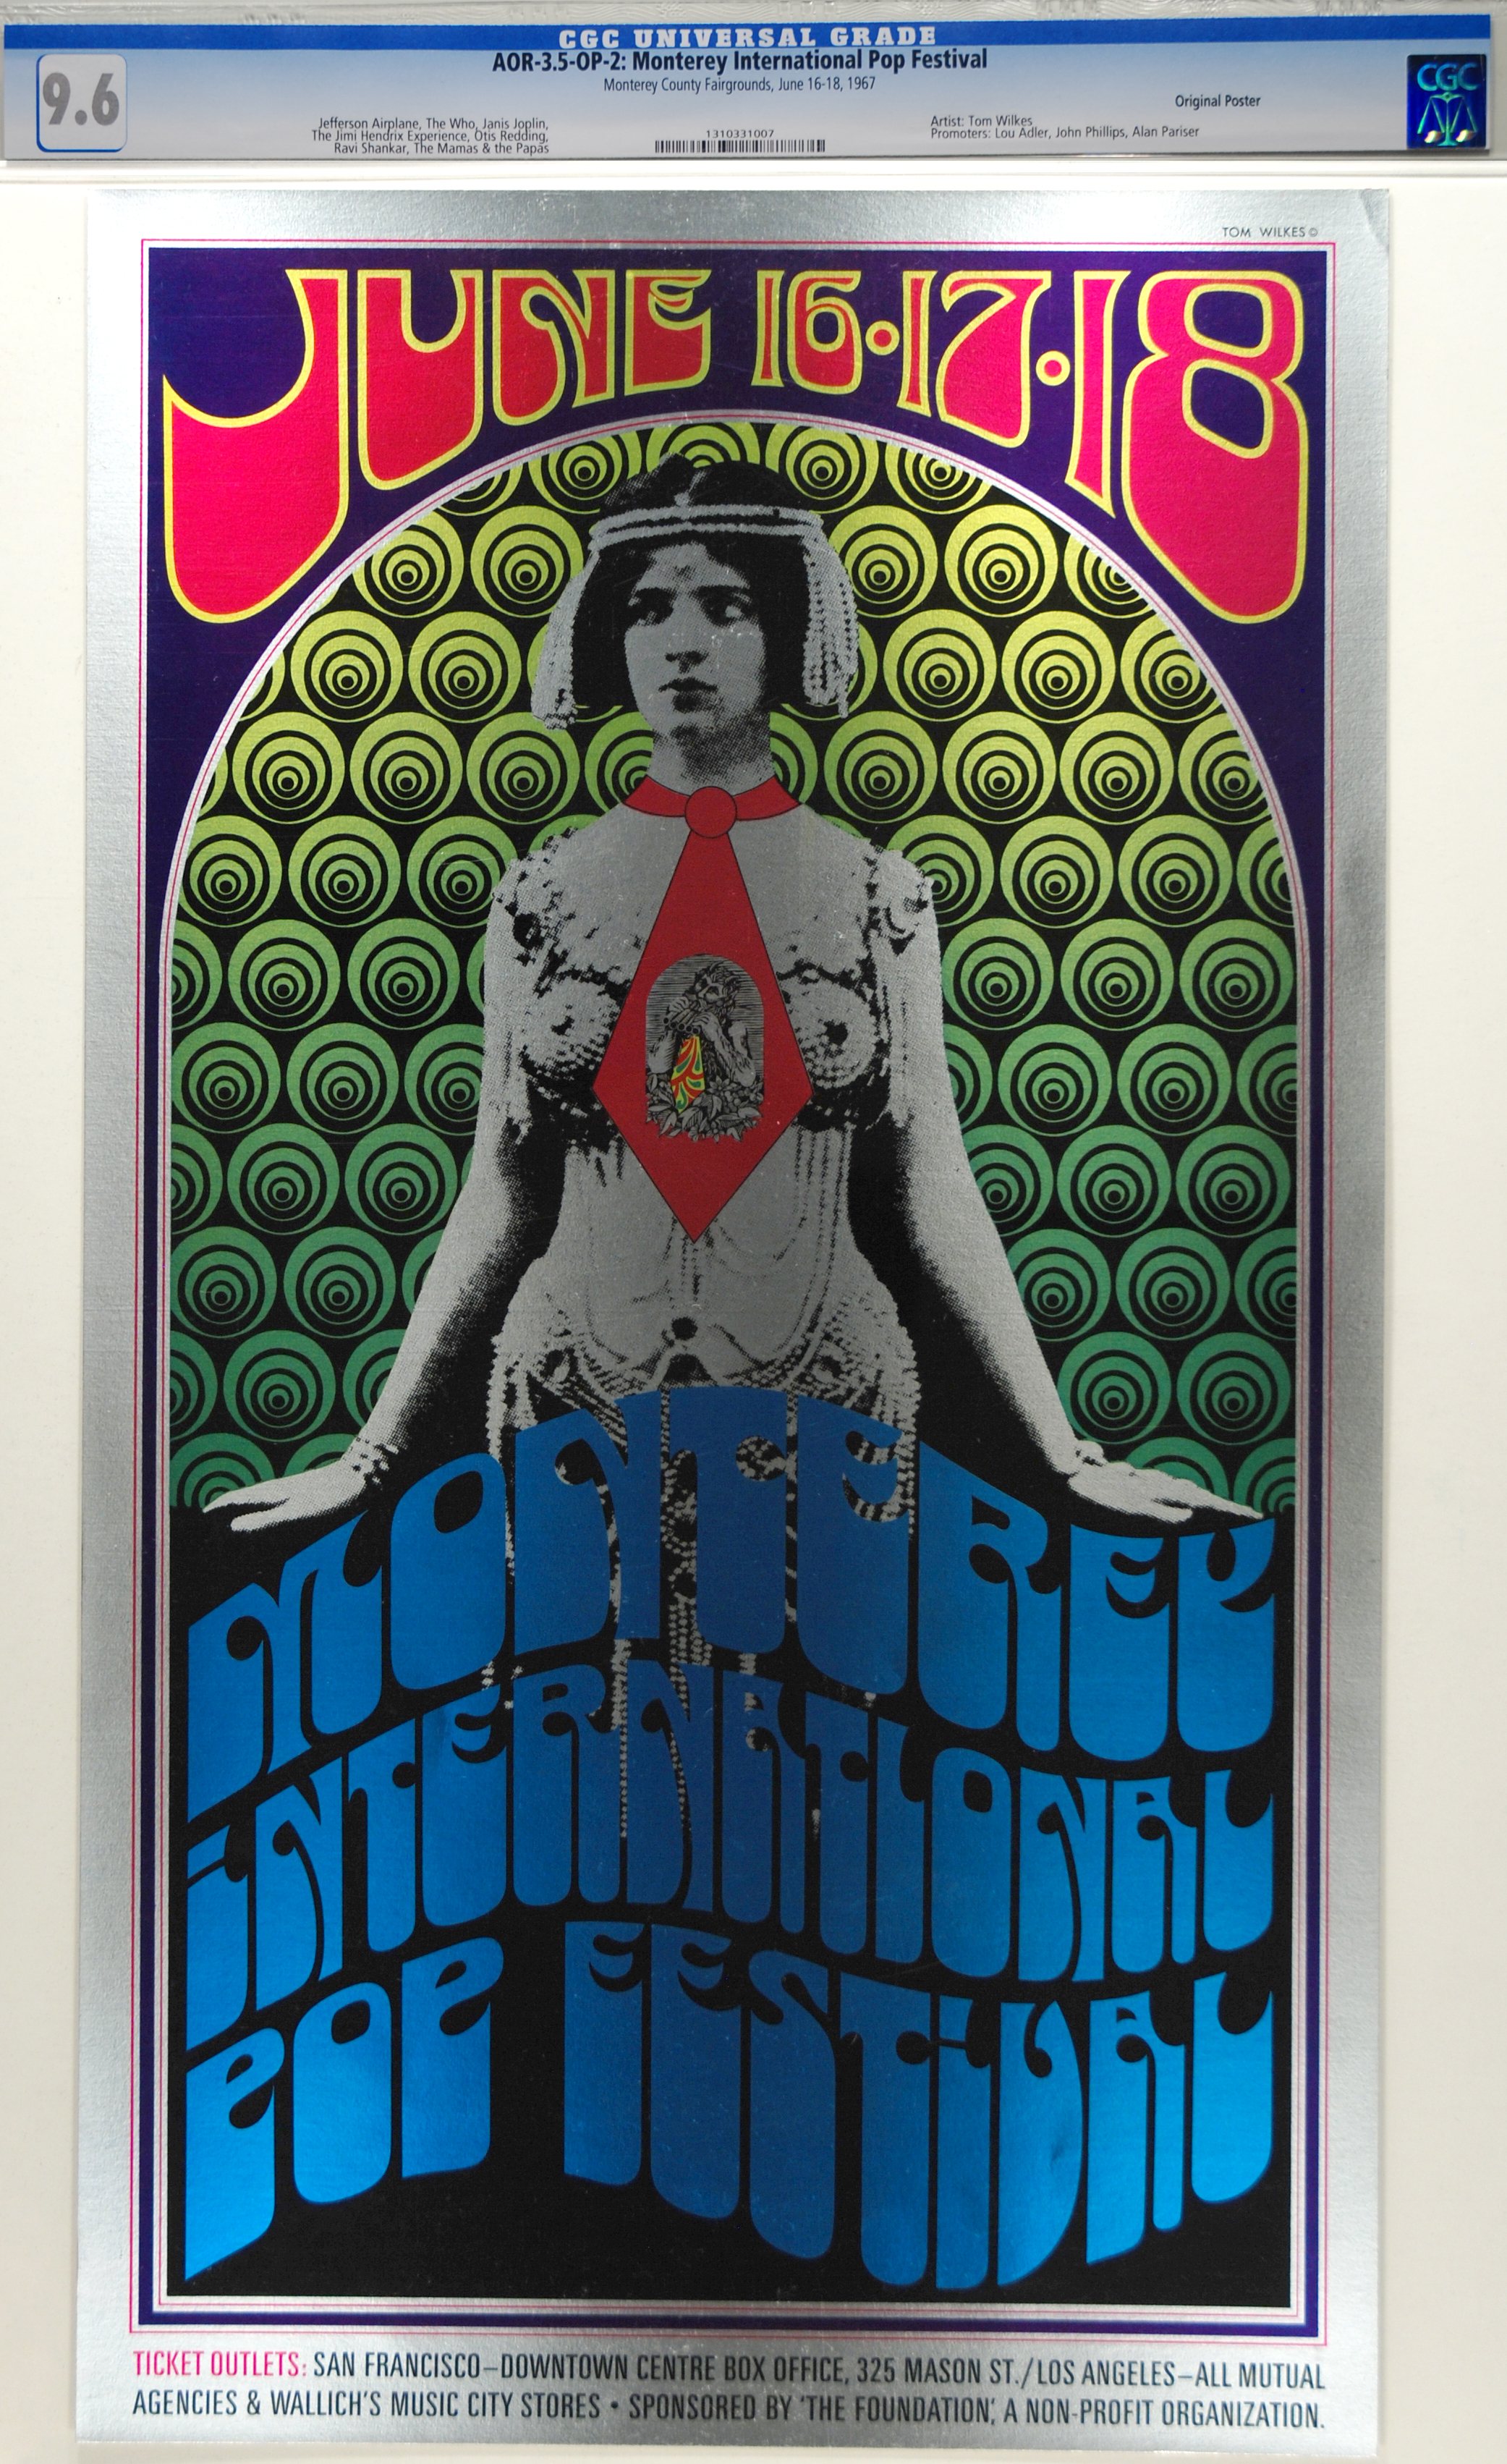 This beautiful Monterey International Pop Festival Concert poster CGC graded 9.6 sold for a record $4611 in our auction 2/17.